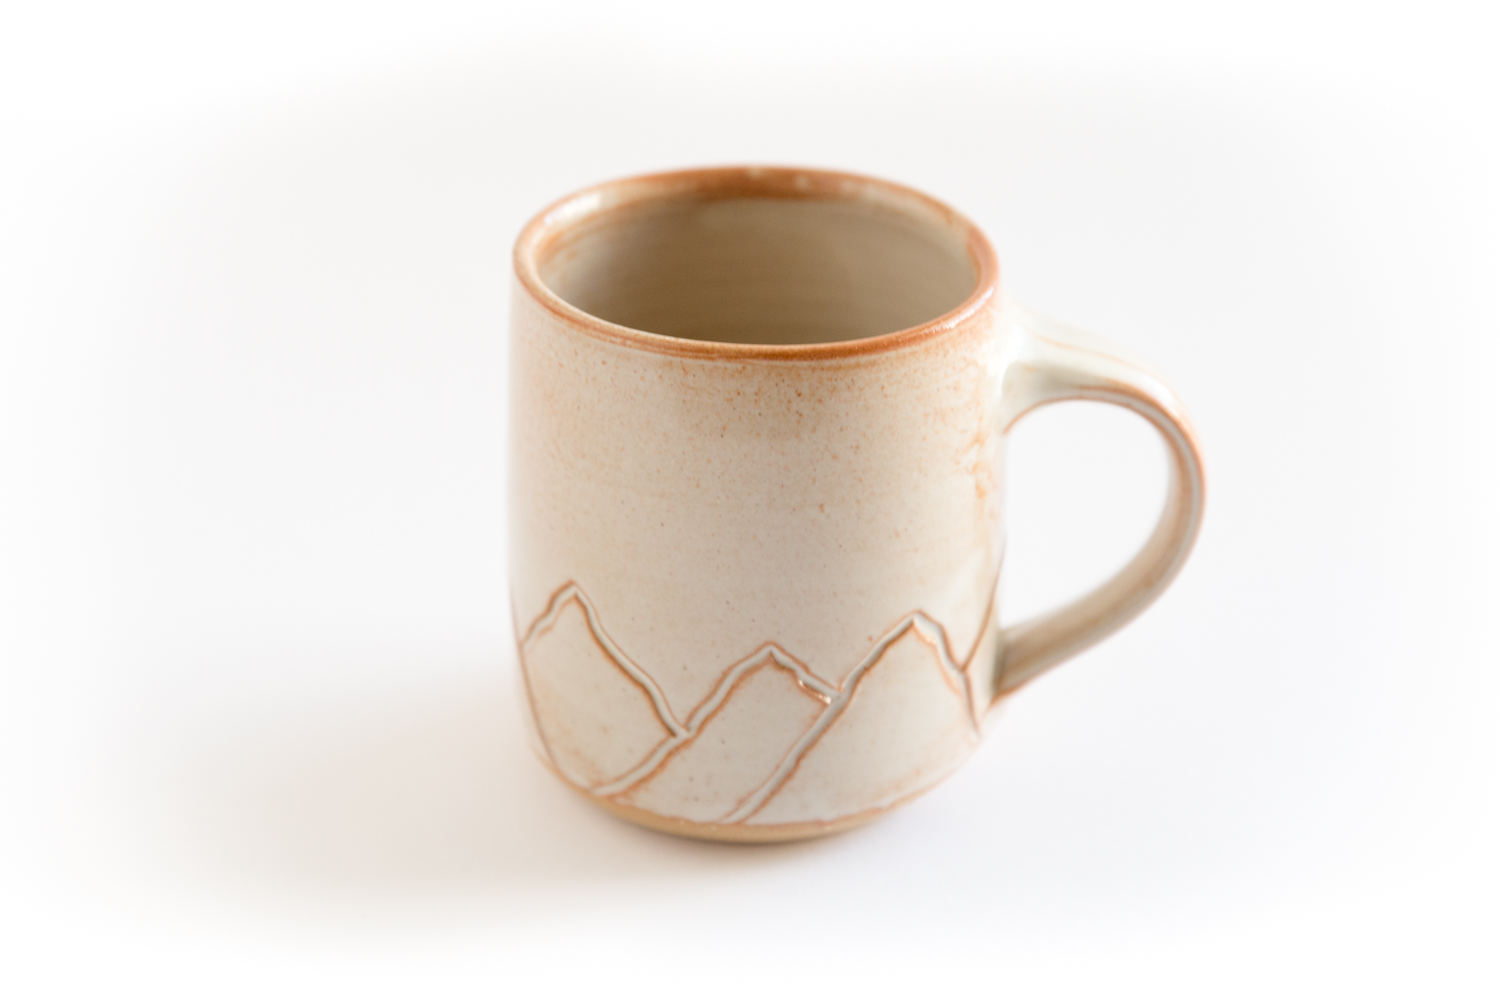 moutain mug sandstone.jpg